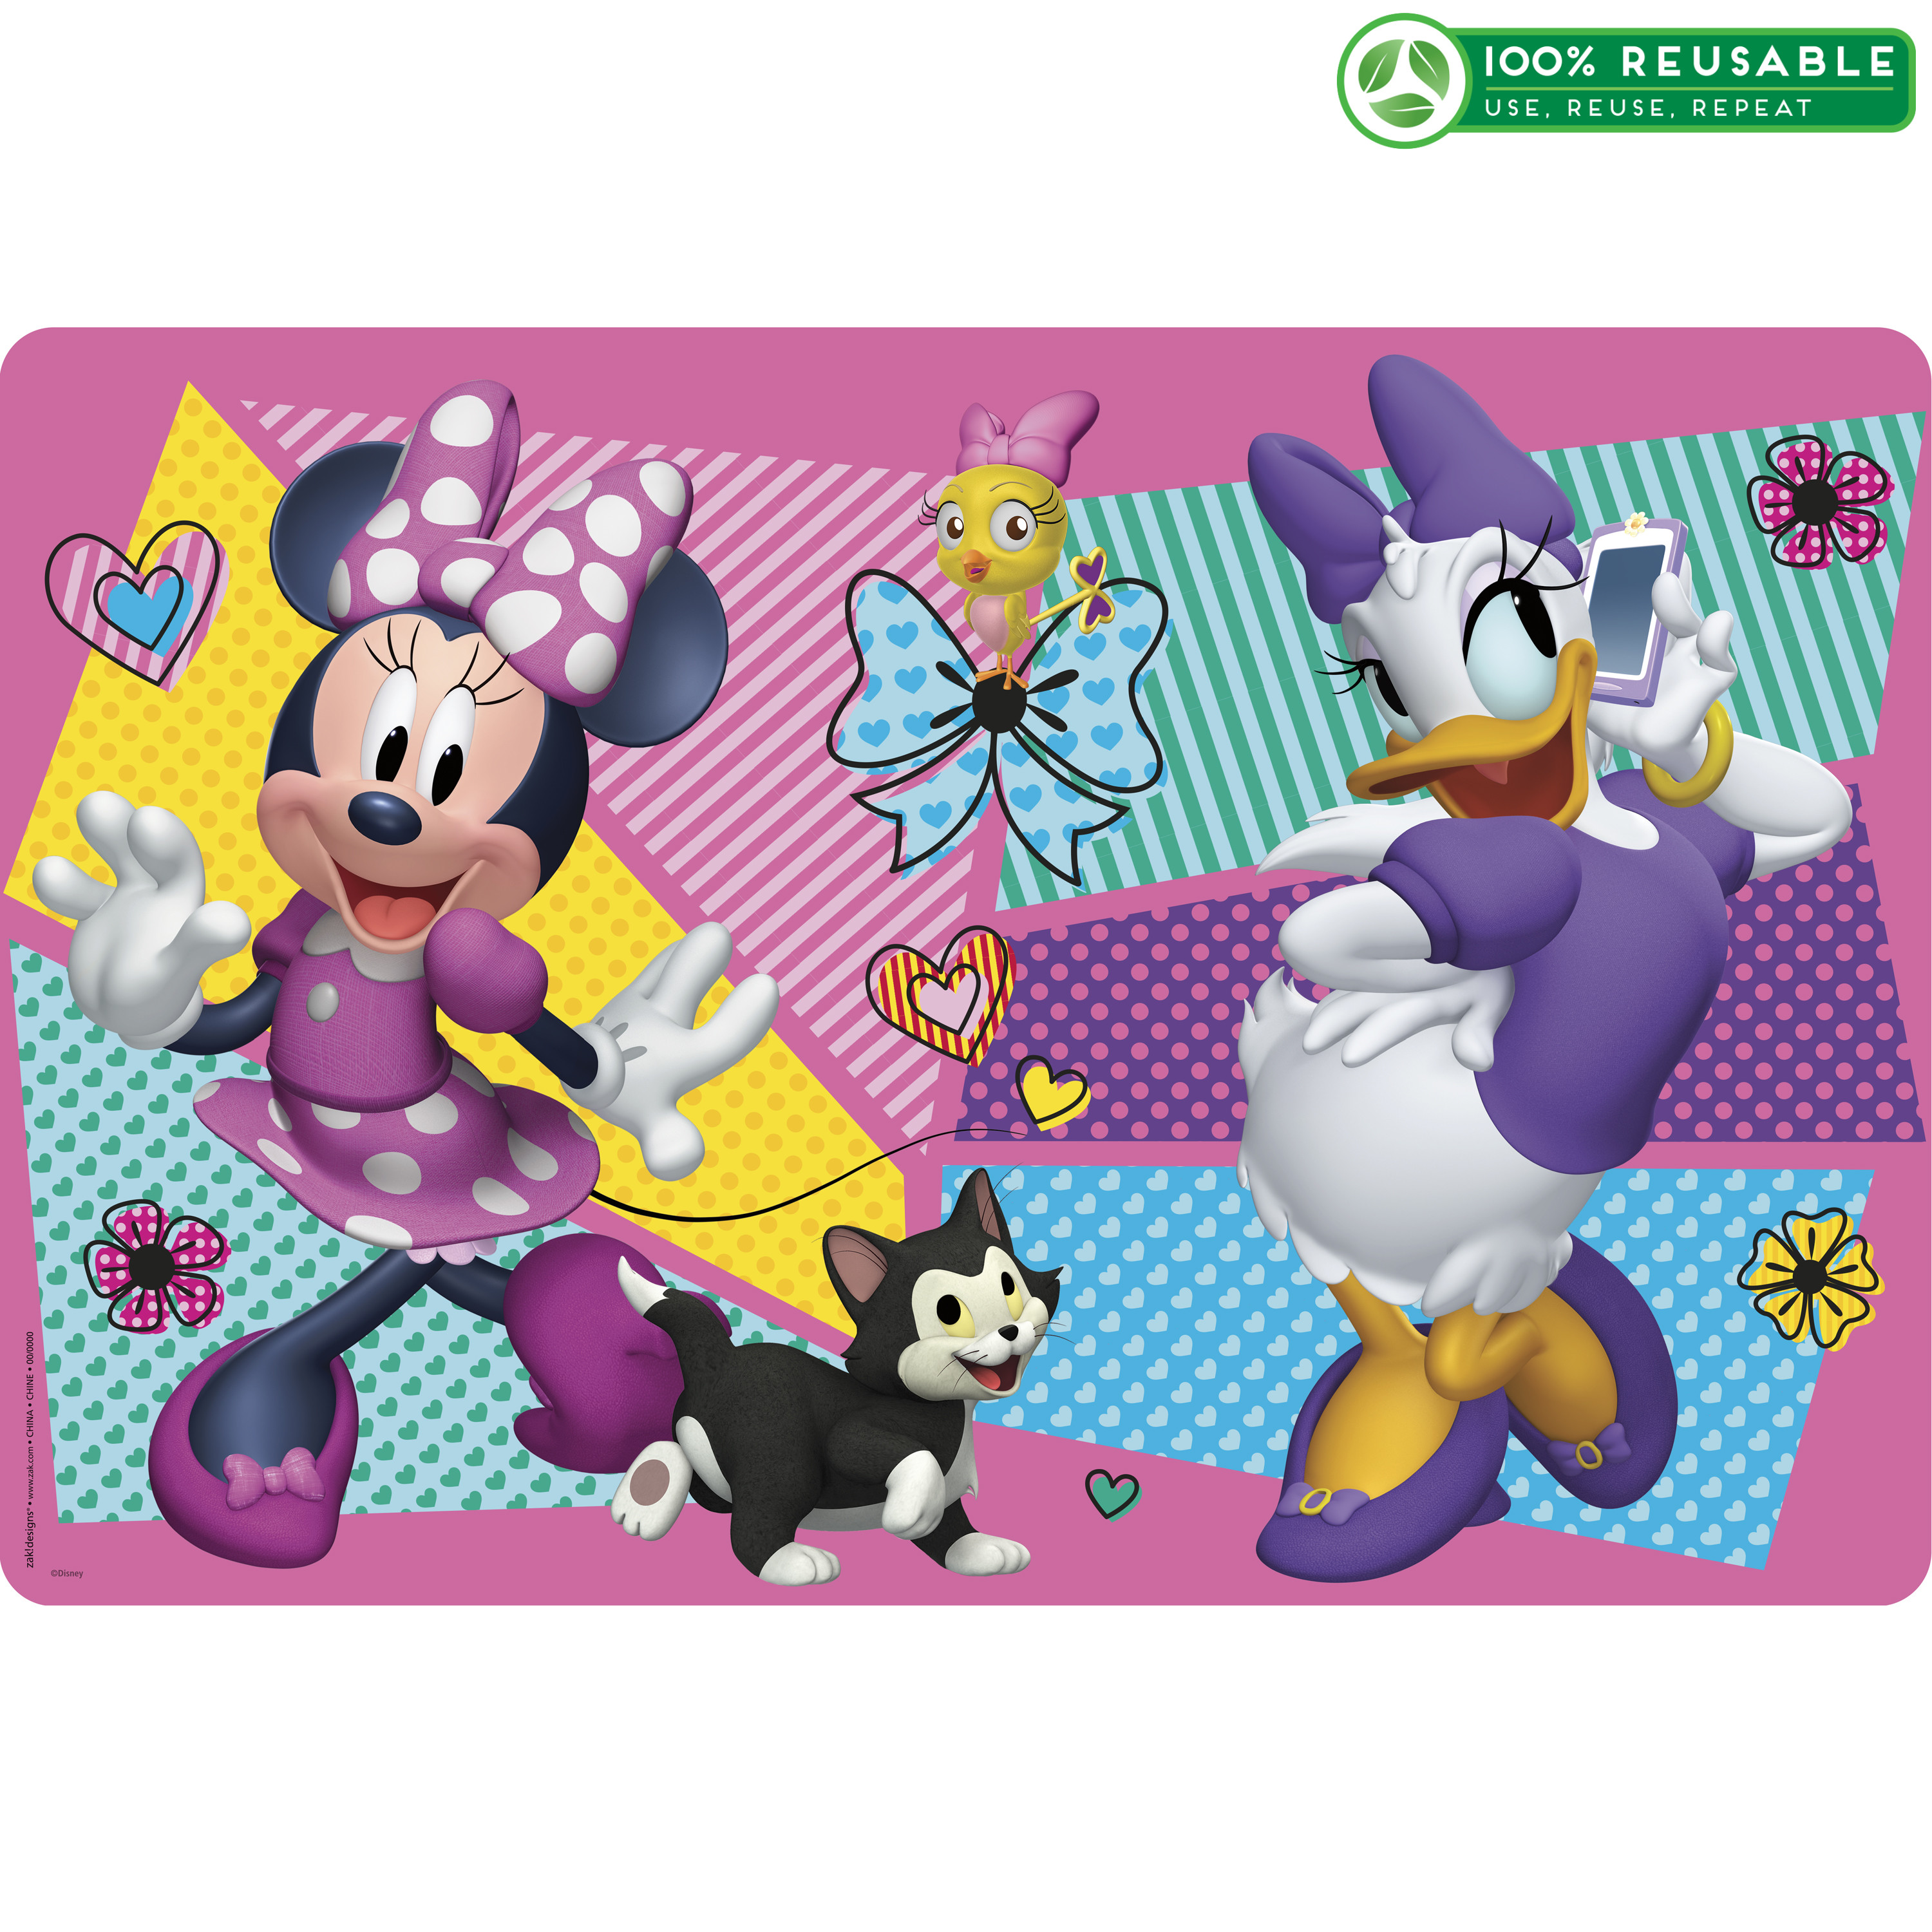 Disney Kid's Placemat, Minnie Mouse slideshow image 1